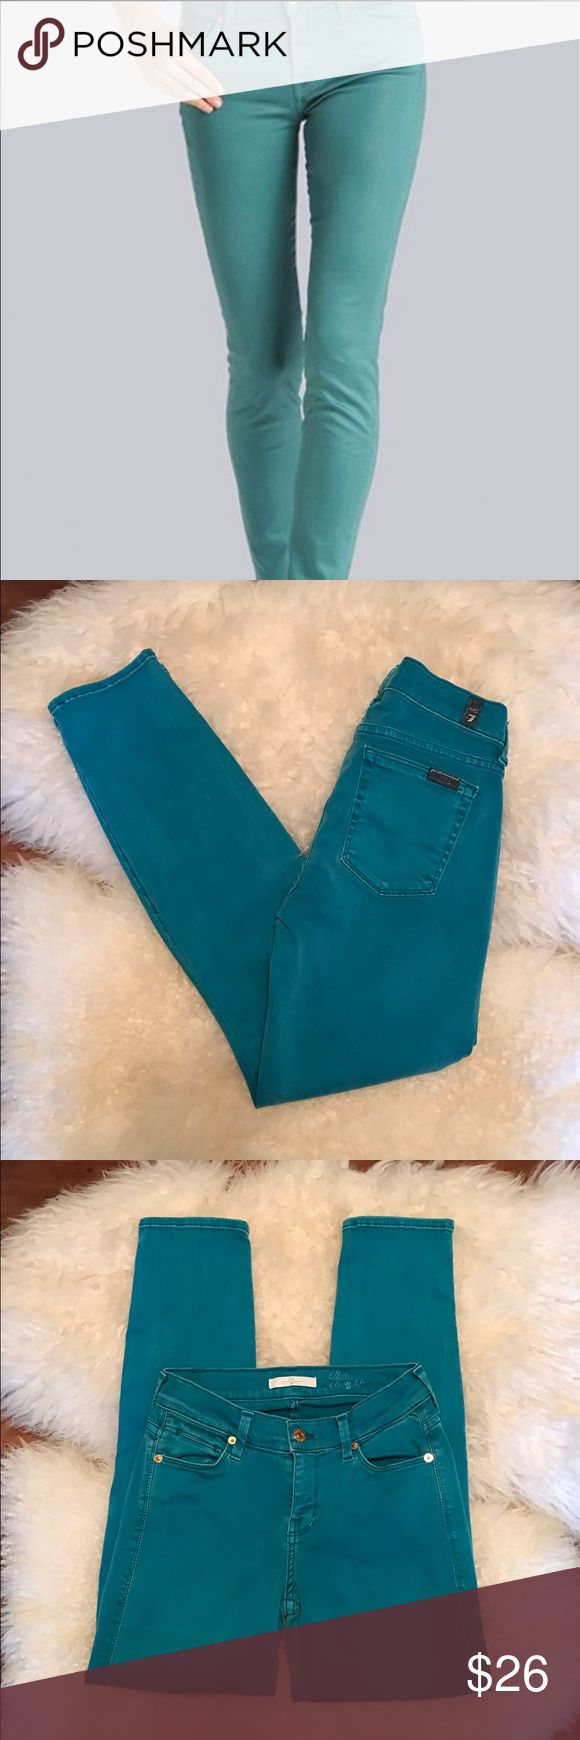 "7 For All Mankind Jeans 7 For All Mankind, ""slim straight"" fit. Beautiful deep aqua jeans. Size 24 with a 27"" inseam. Excellent condition! 7 For All Mankind Pants Ankle & Cropped"